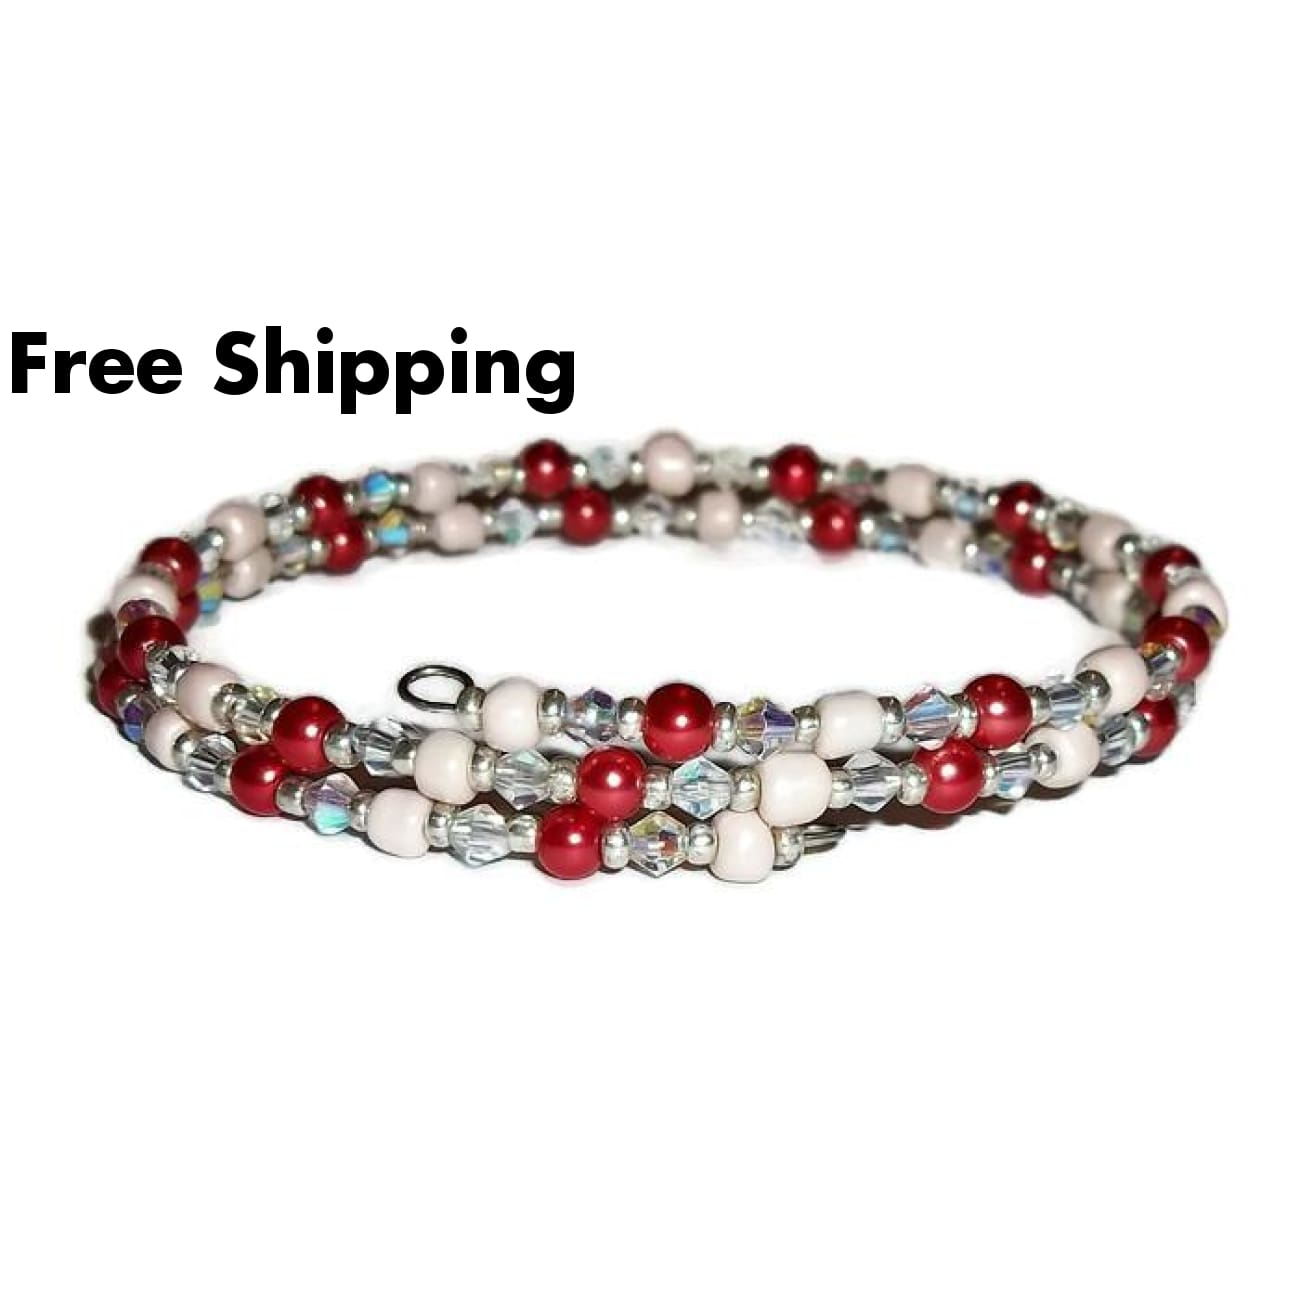 Plus Size Elegance Red Glass Pearl Clear Glass & Cream Glass Beaded Stackables Artisan Crafted Double Wrap Bracelet (L-Xxl) - New Arrival